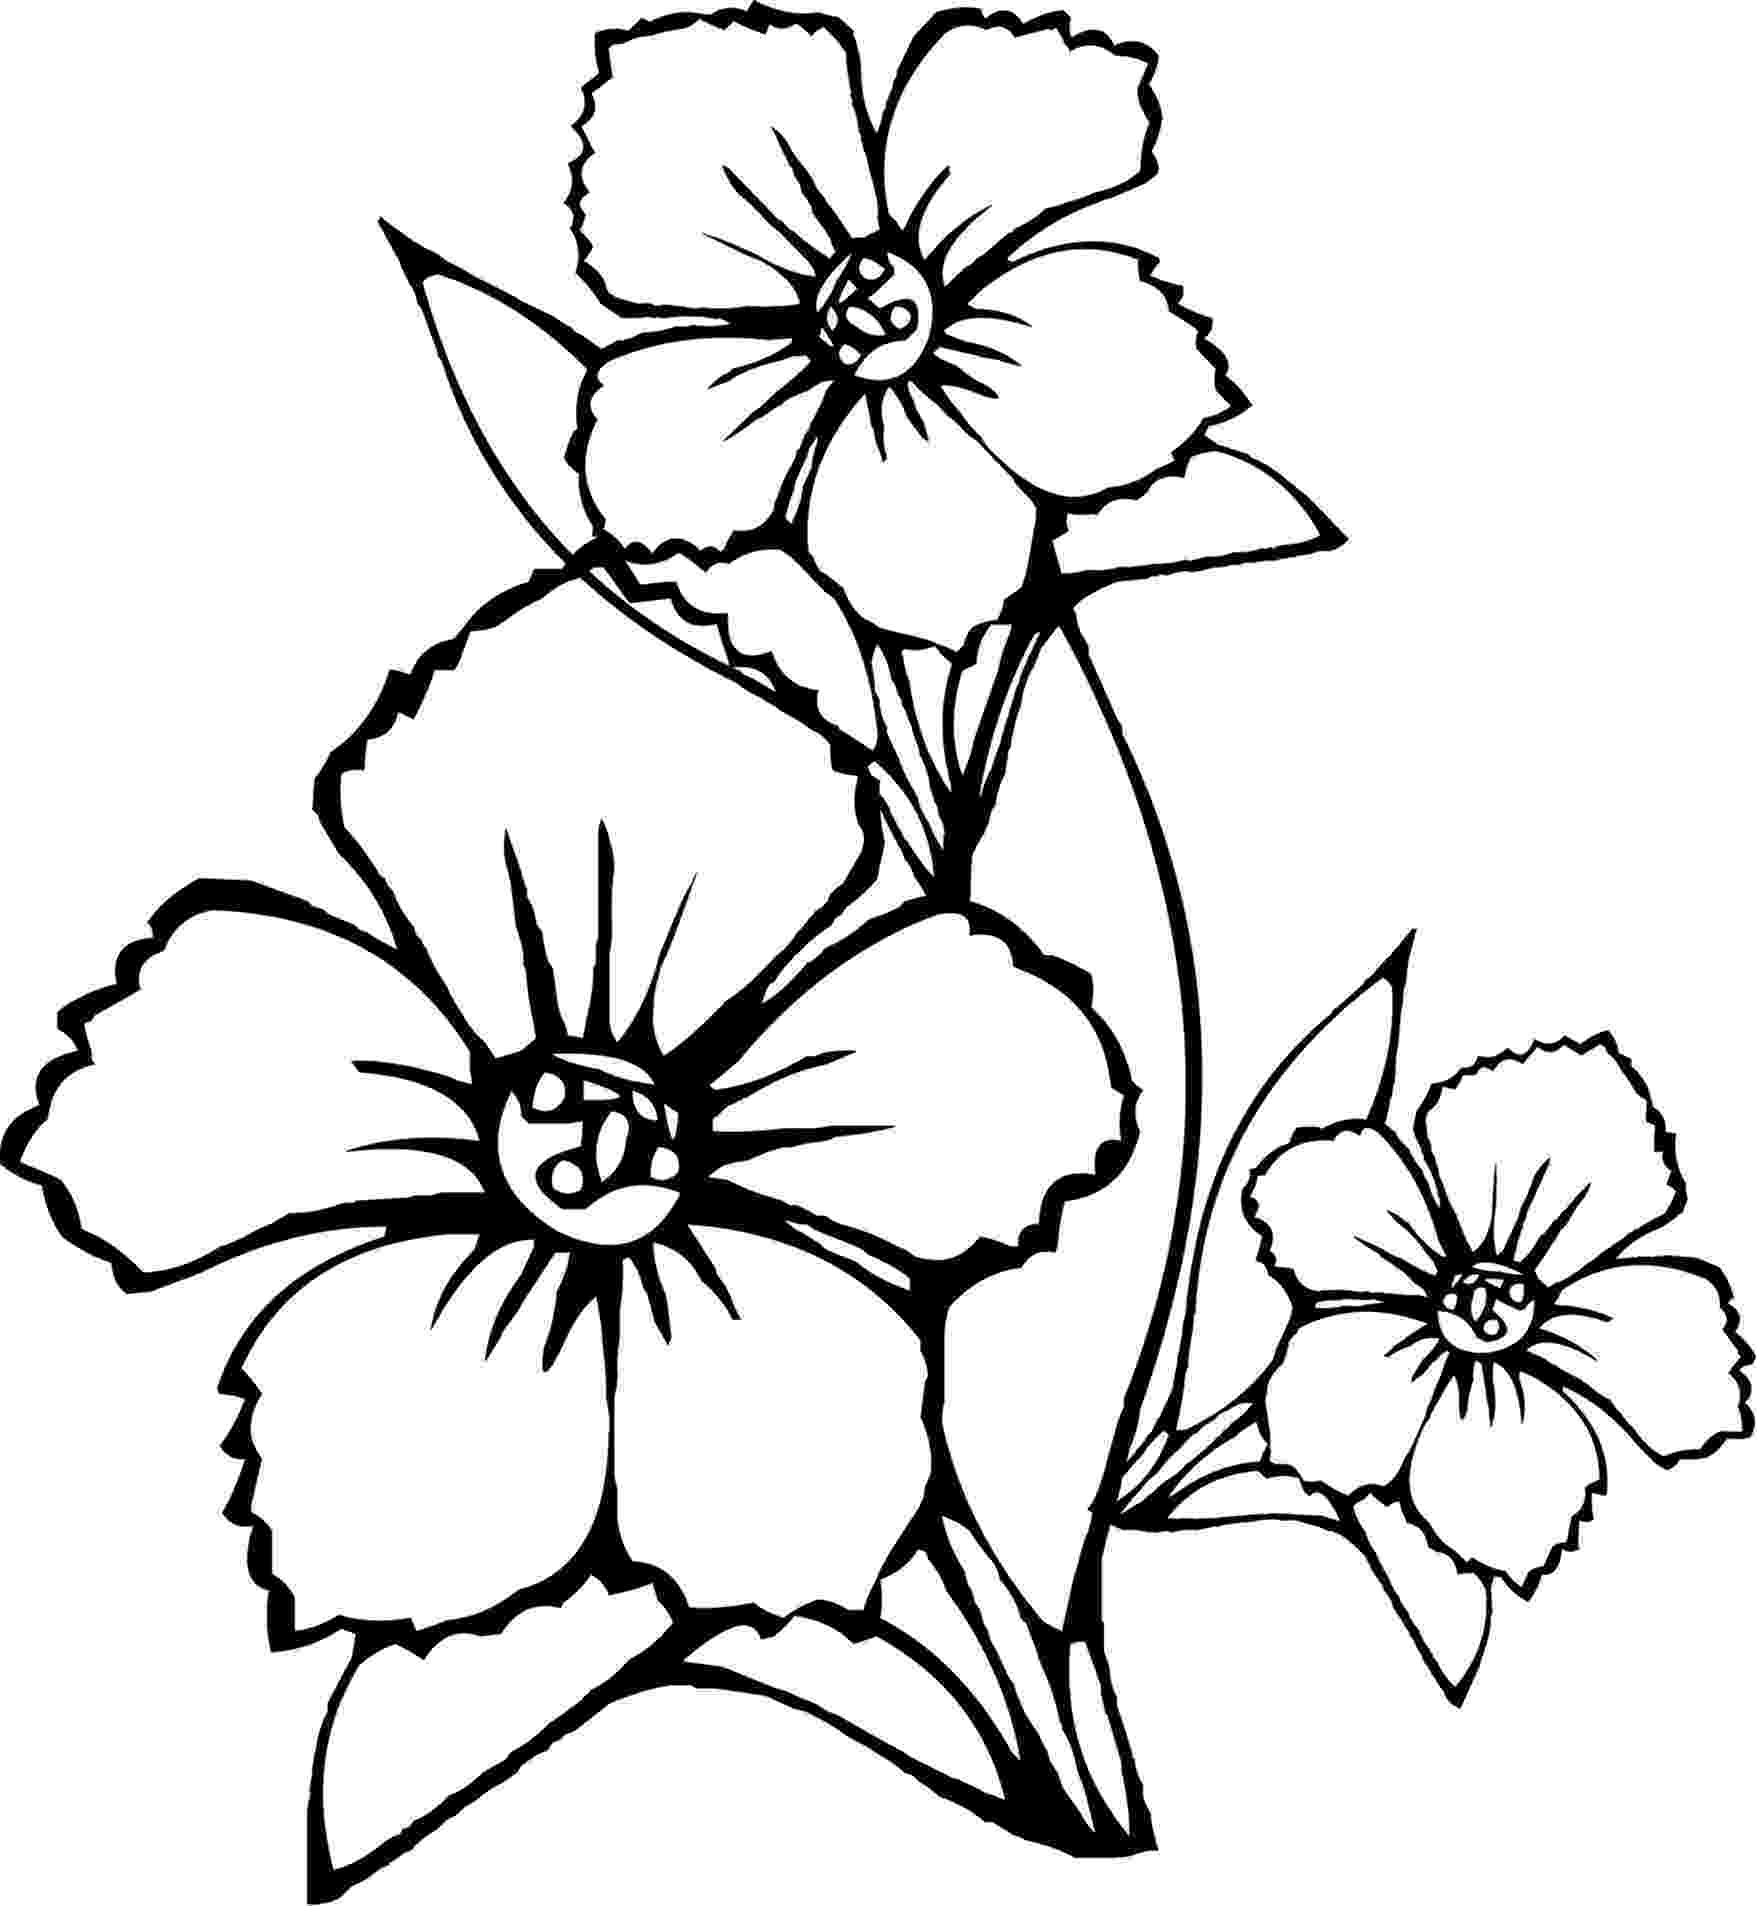 free printable flowers to color beautiful flower coloring pages with delicate forms of flowers free printable color to